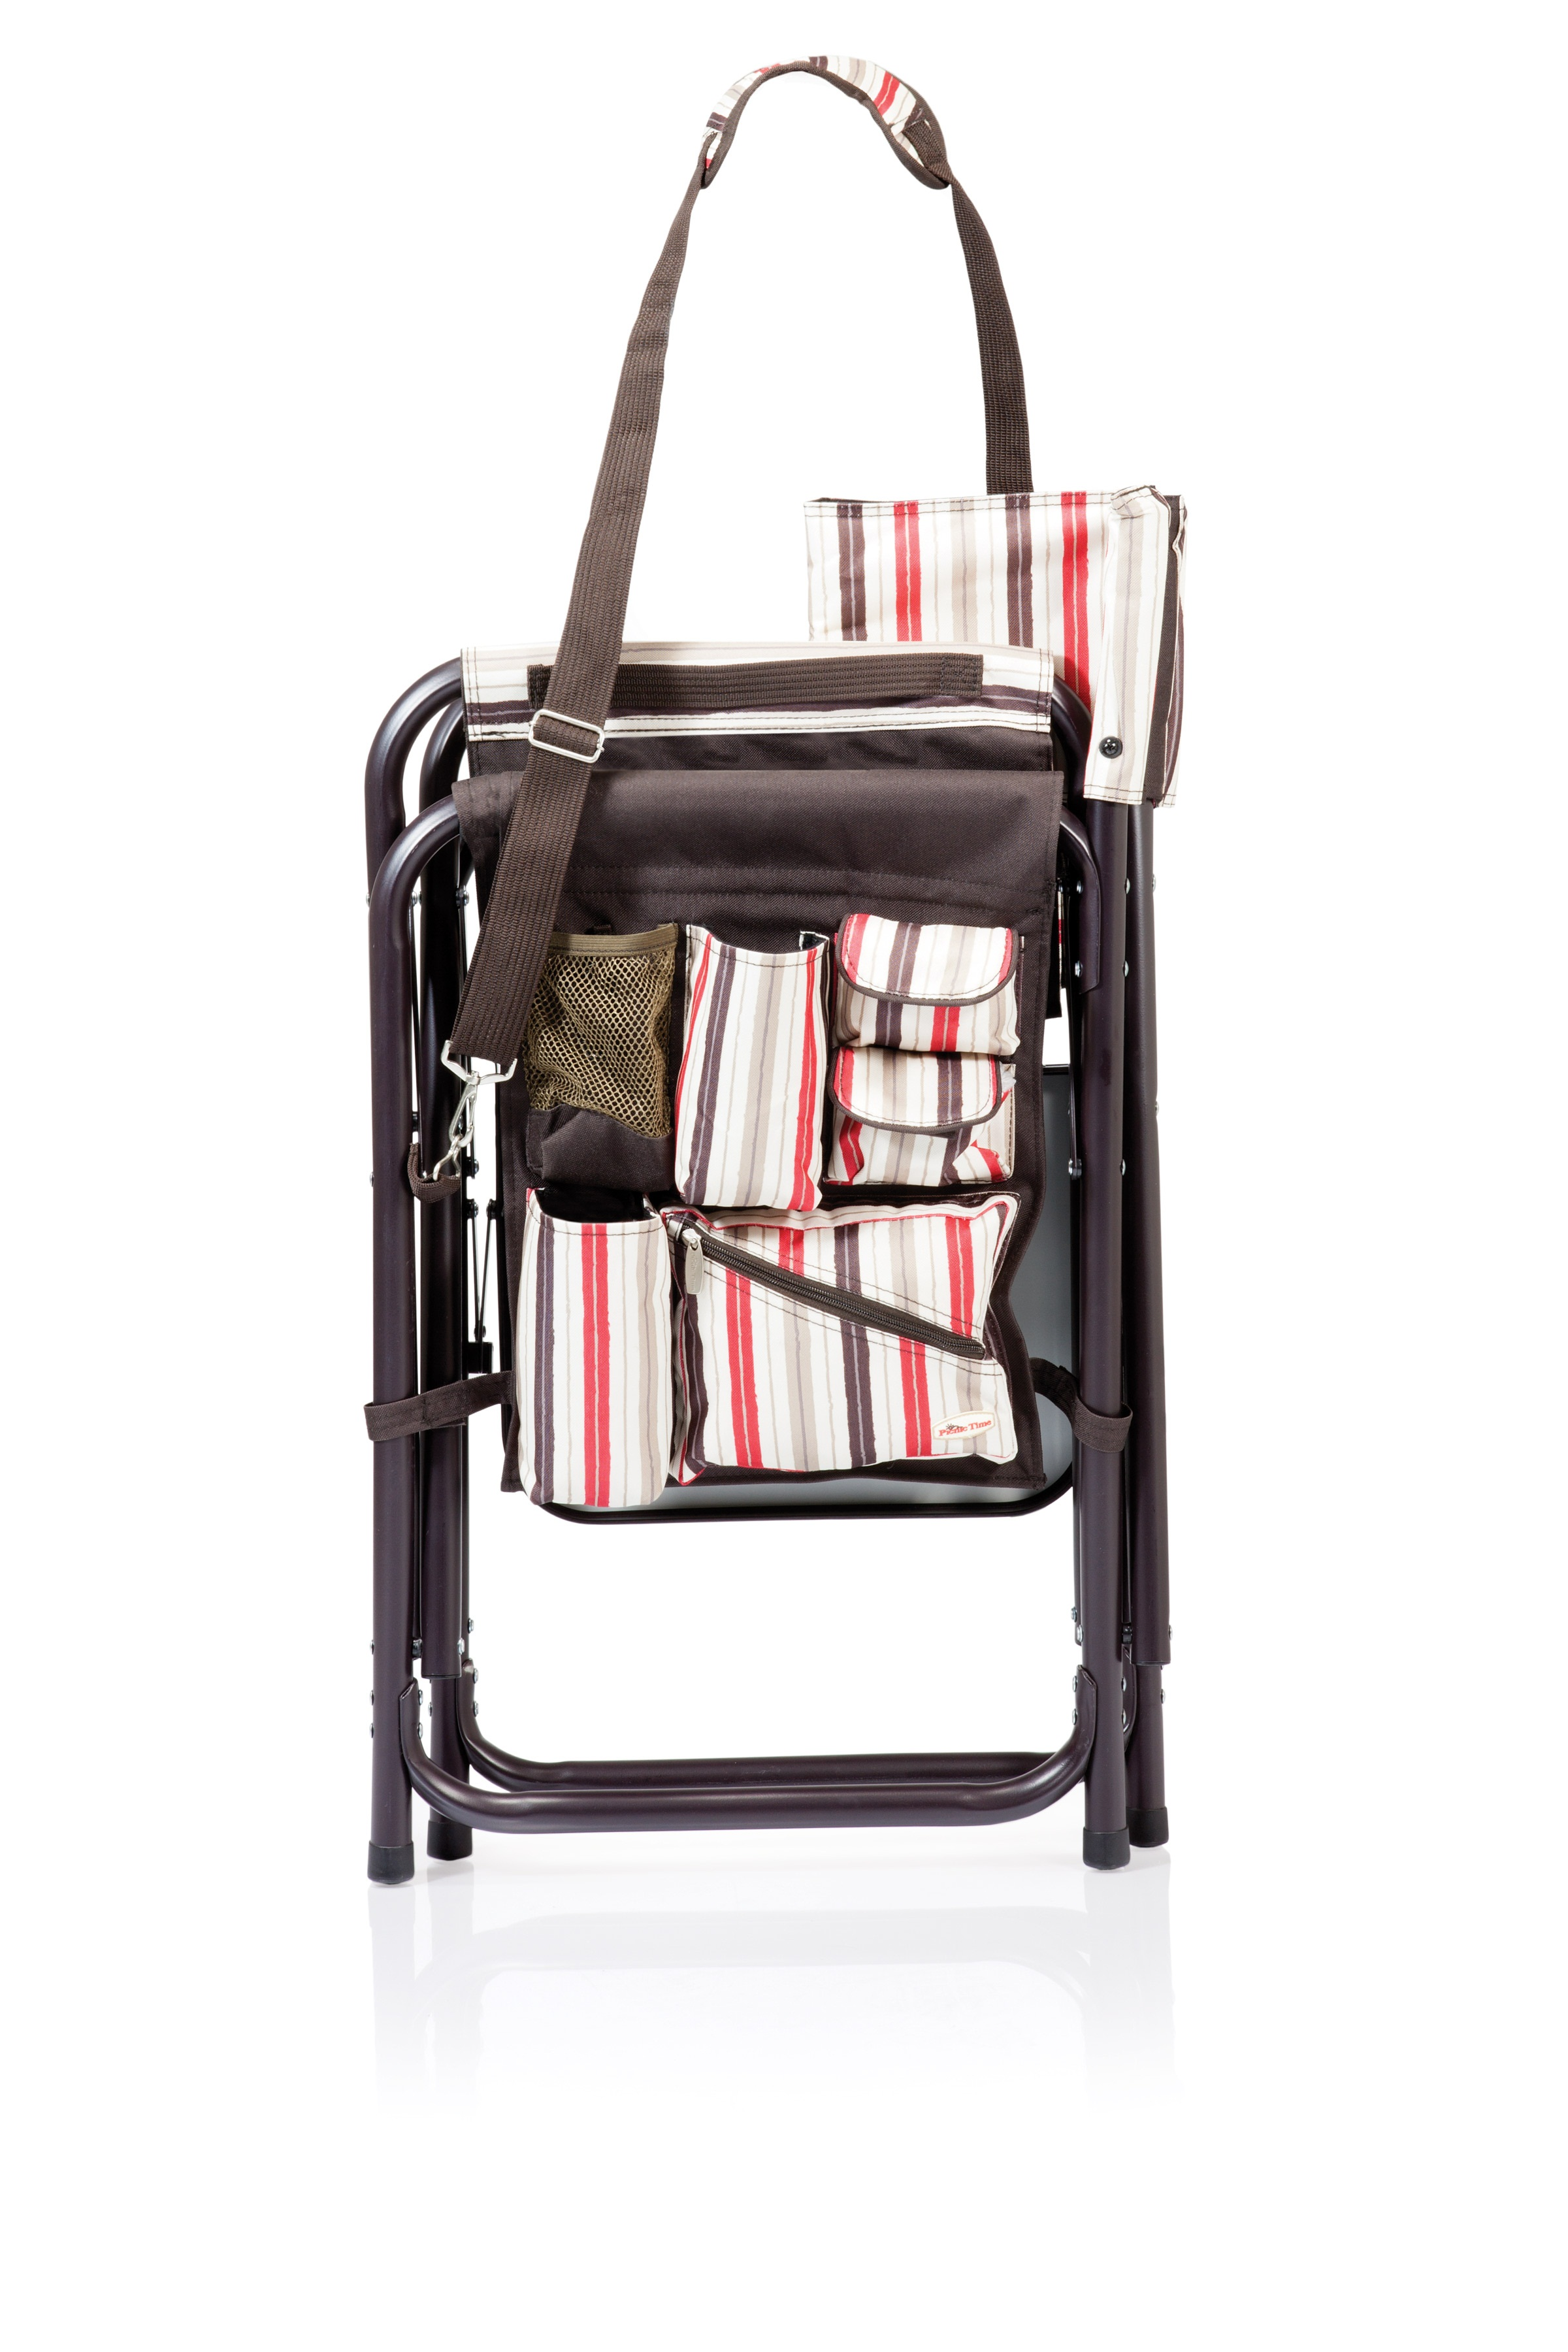 Picnic Time Sports Chair Picnic Time Sports Camping Chair Moka 809 00 777